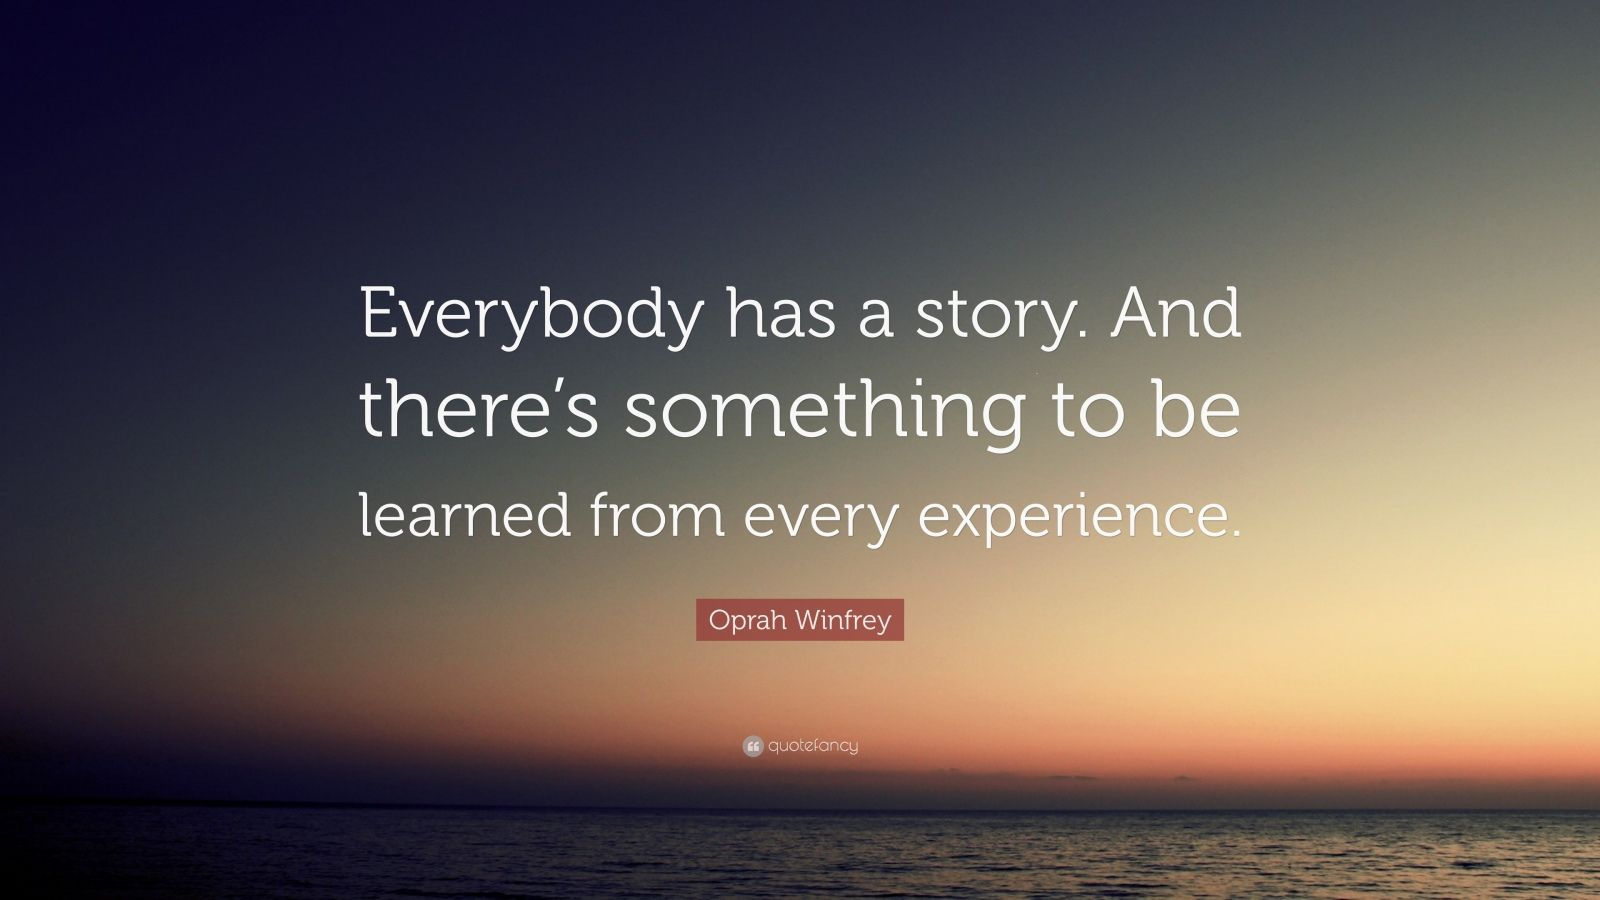 """Oprah Winfrey Quote: """"Everybody has a story. And there's something to be learned from every experience."""""""